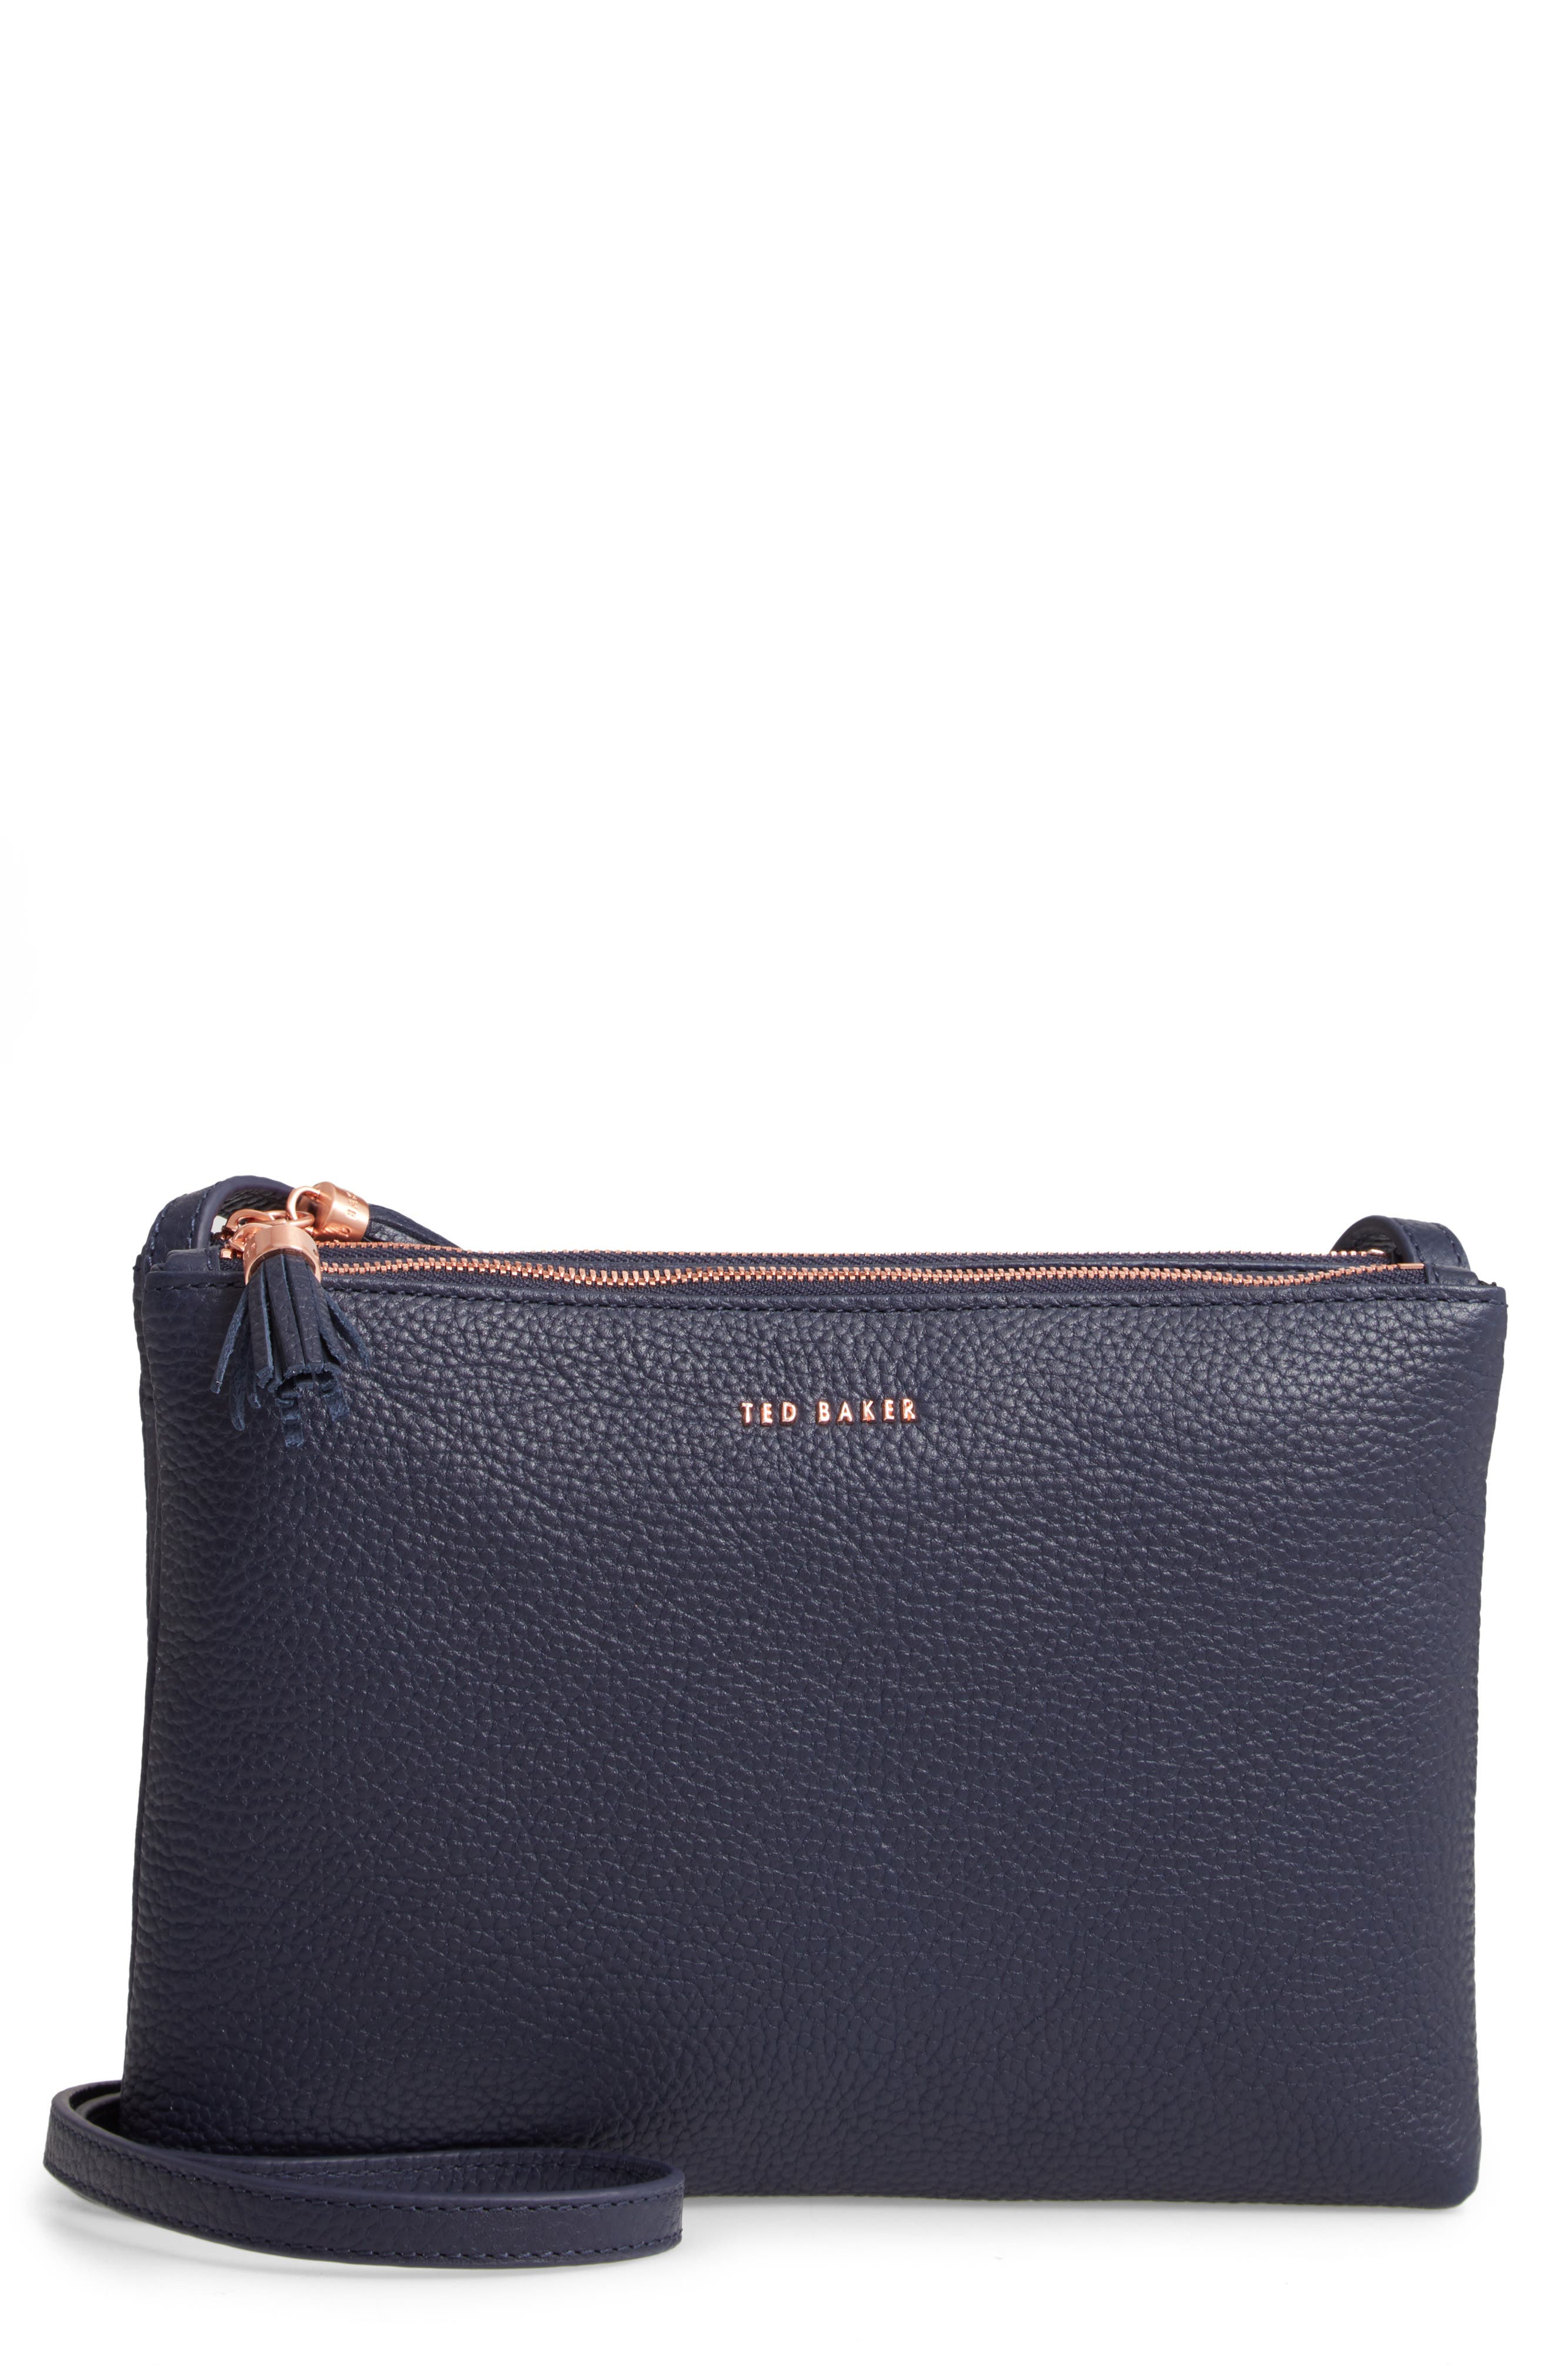 TED BAKER LONDON, Maceyy Double Zip Leather Crossbody Bag, Main thumbnail 1, color, NAVY